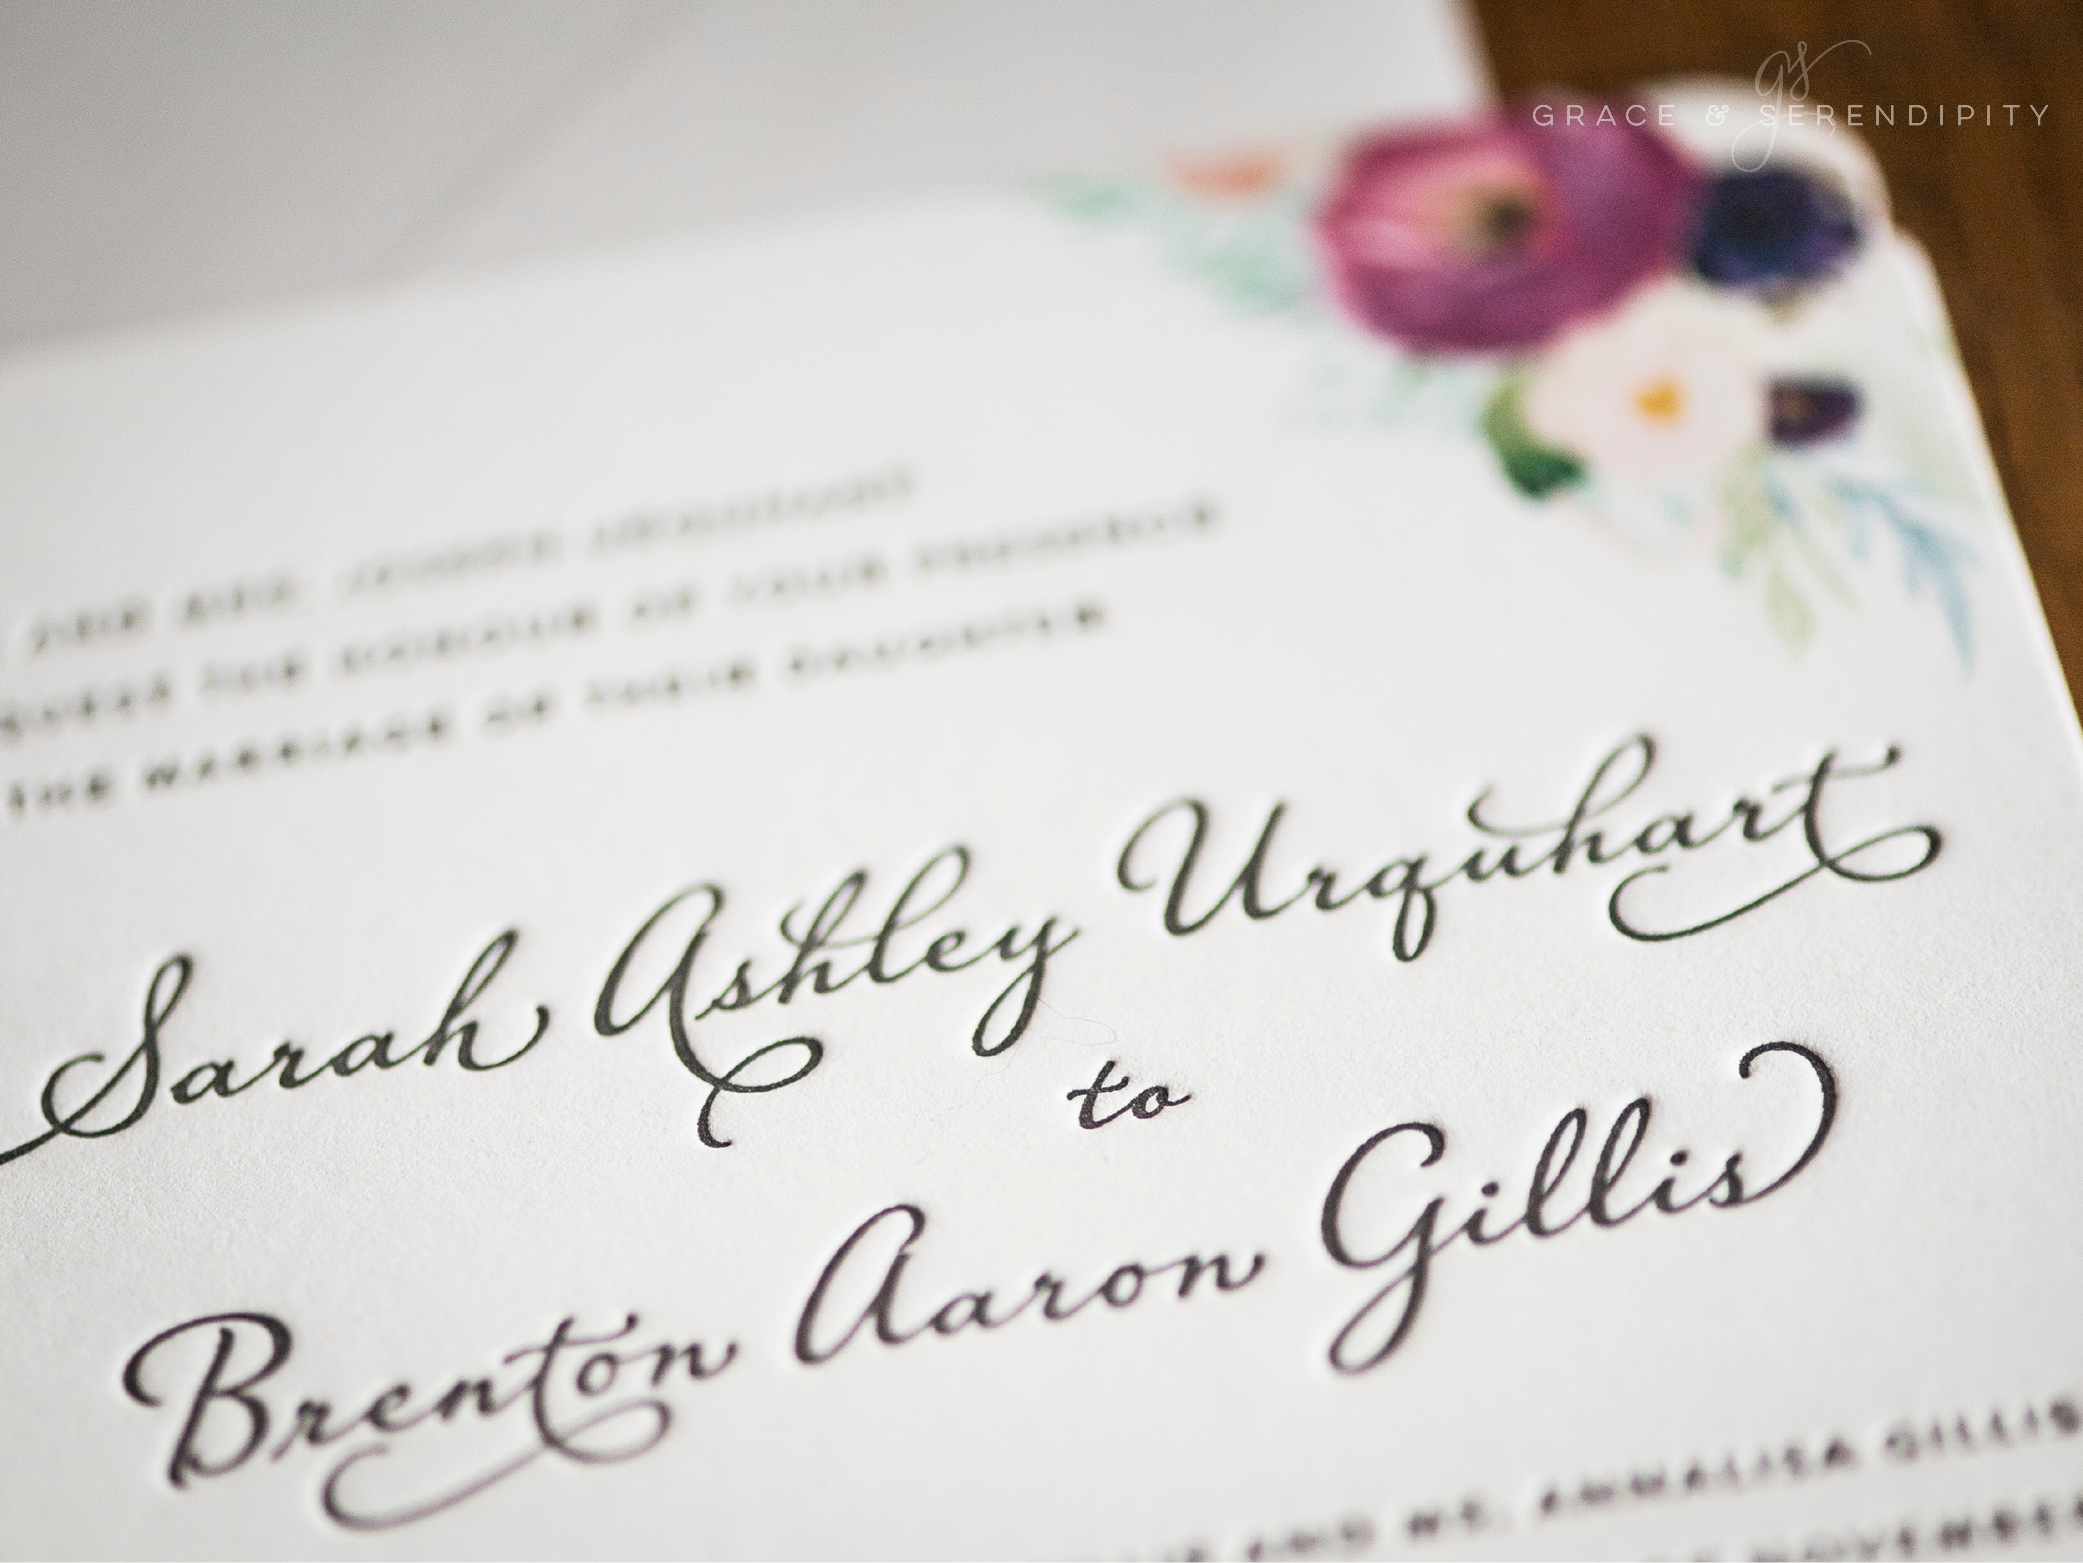 Five Budgeting Tips for Wedding Paper from Grace and Serendipity